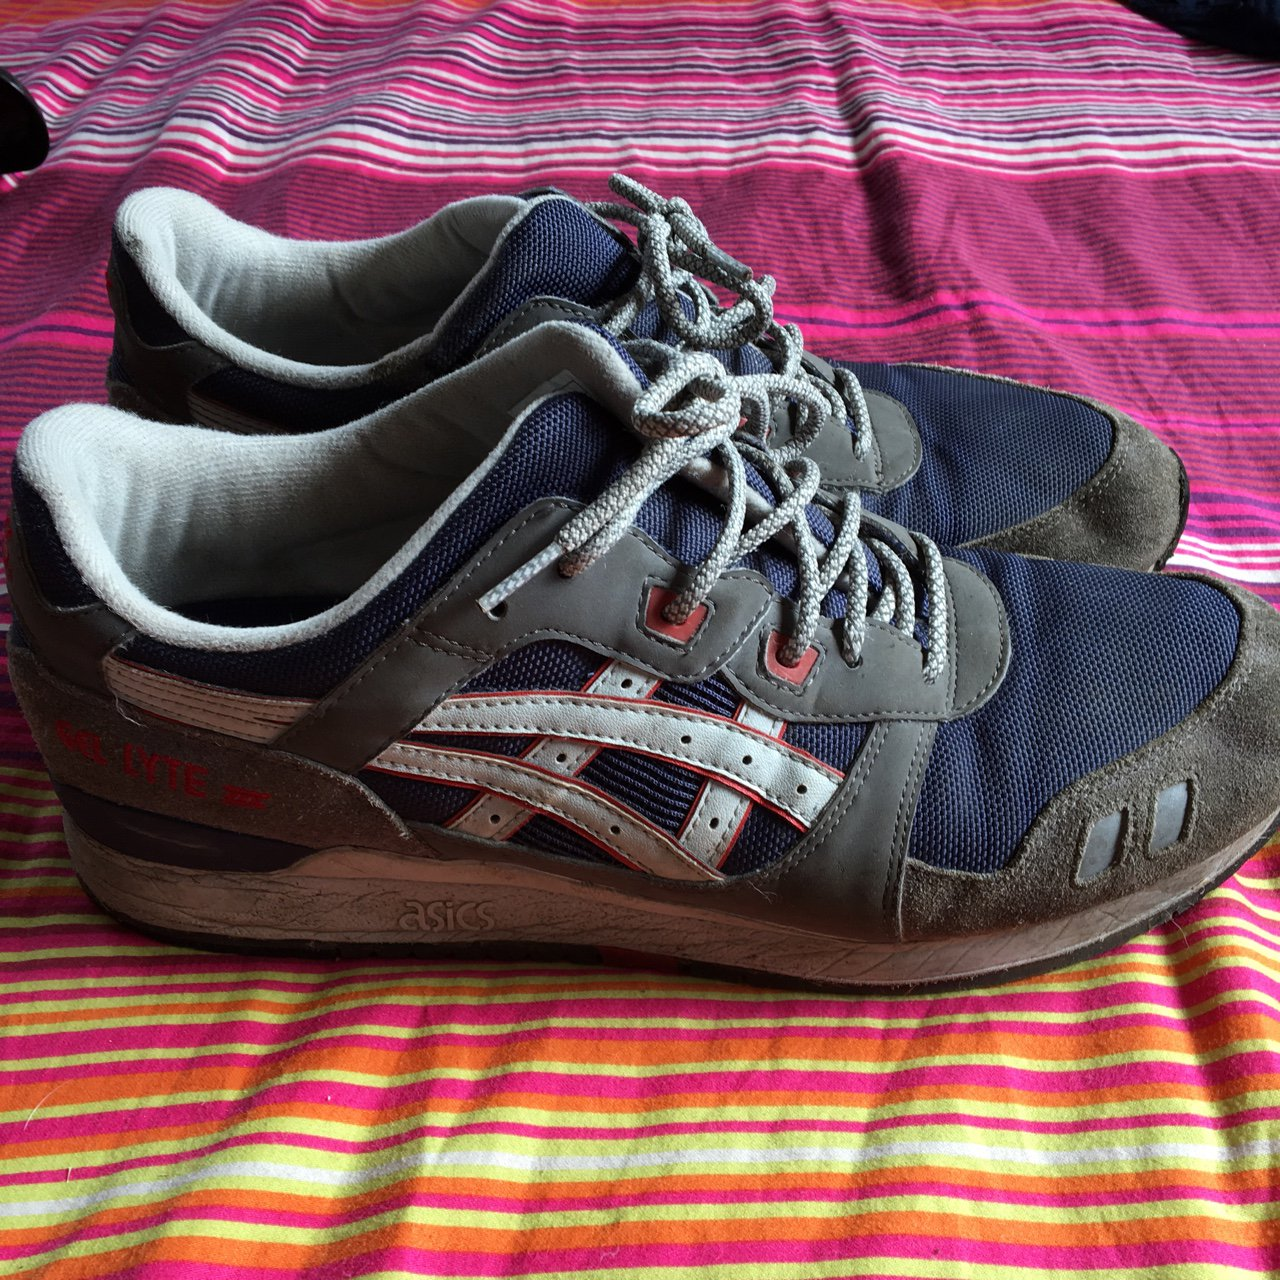 e6fe6e48810 Gel Very 11 Them Asics Uk Lyte Off Take Worn Well Iii Depop dOwwqUXxp